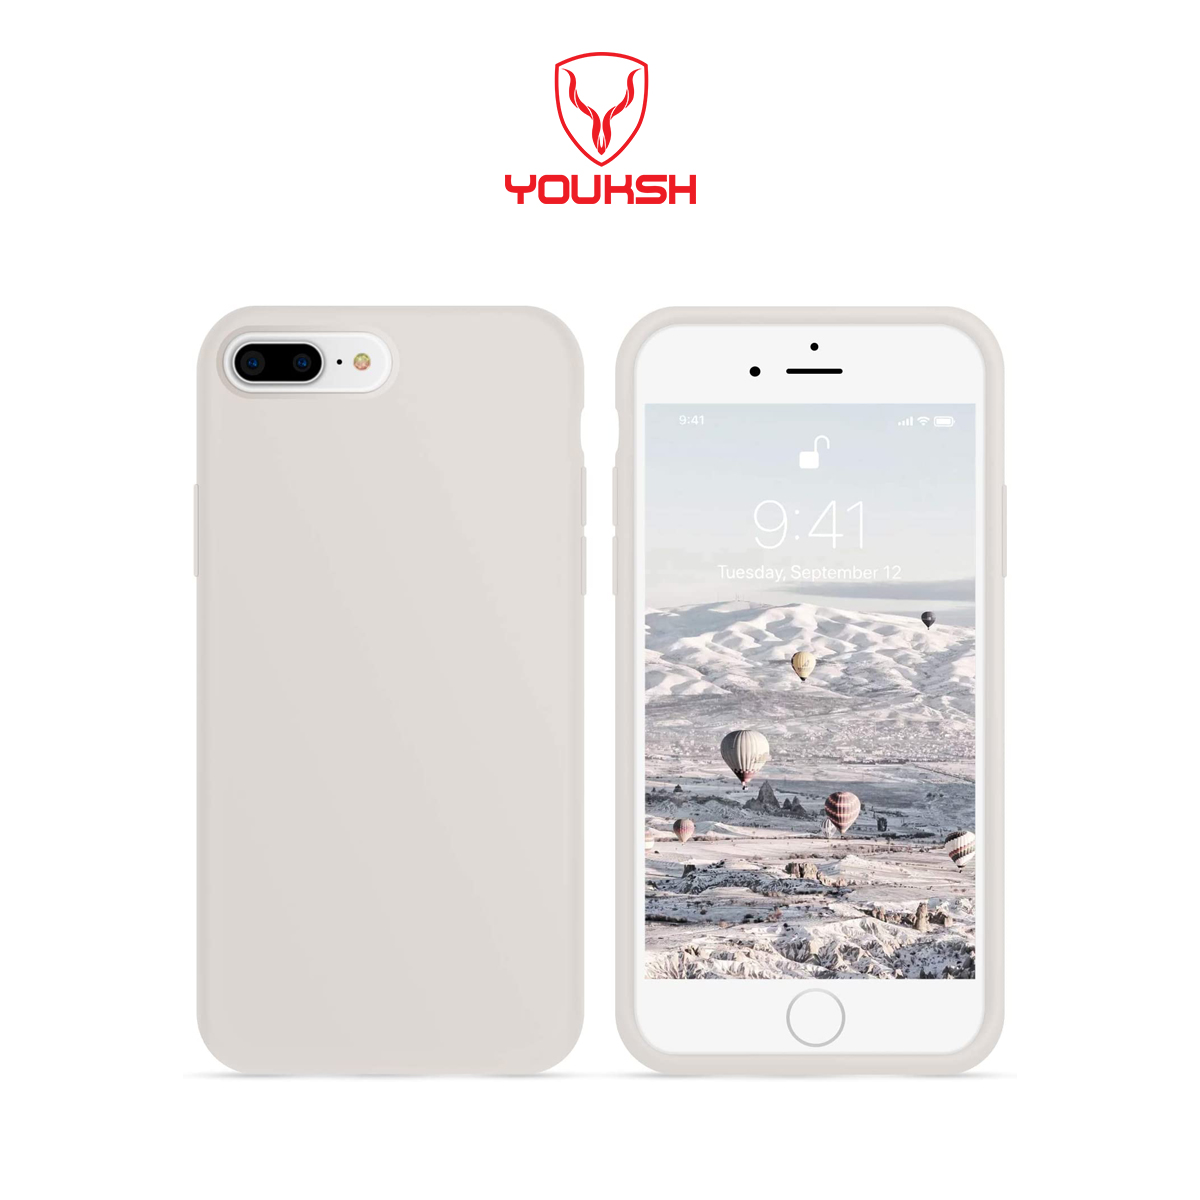 Apple iphone 7 Plus/8 Plus - Youksh Premium Ultra Slim Shockproof Liquid Silky Silicone Soft Rubber Comfortable Protective Case.